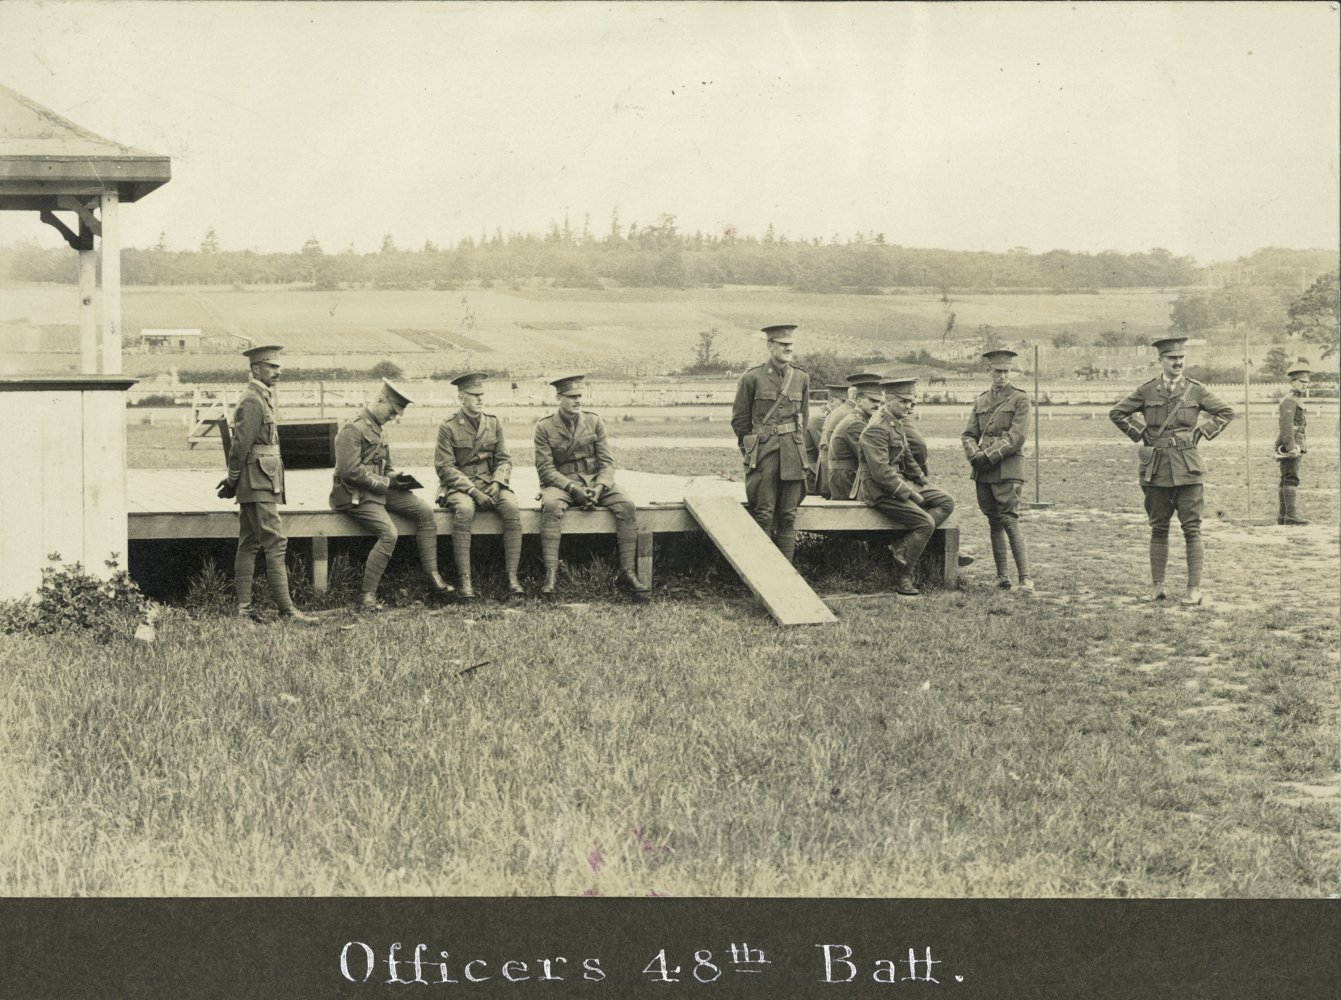 Officers of the 48th Battalion.